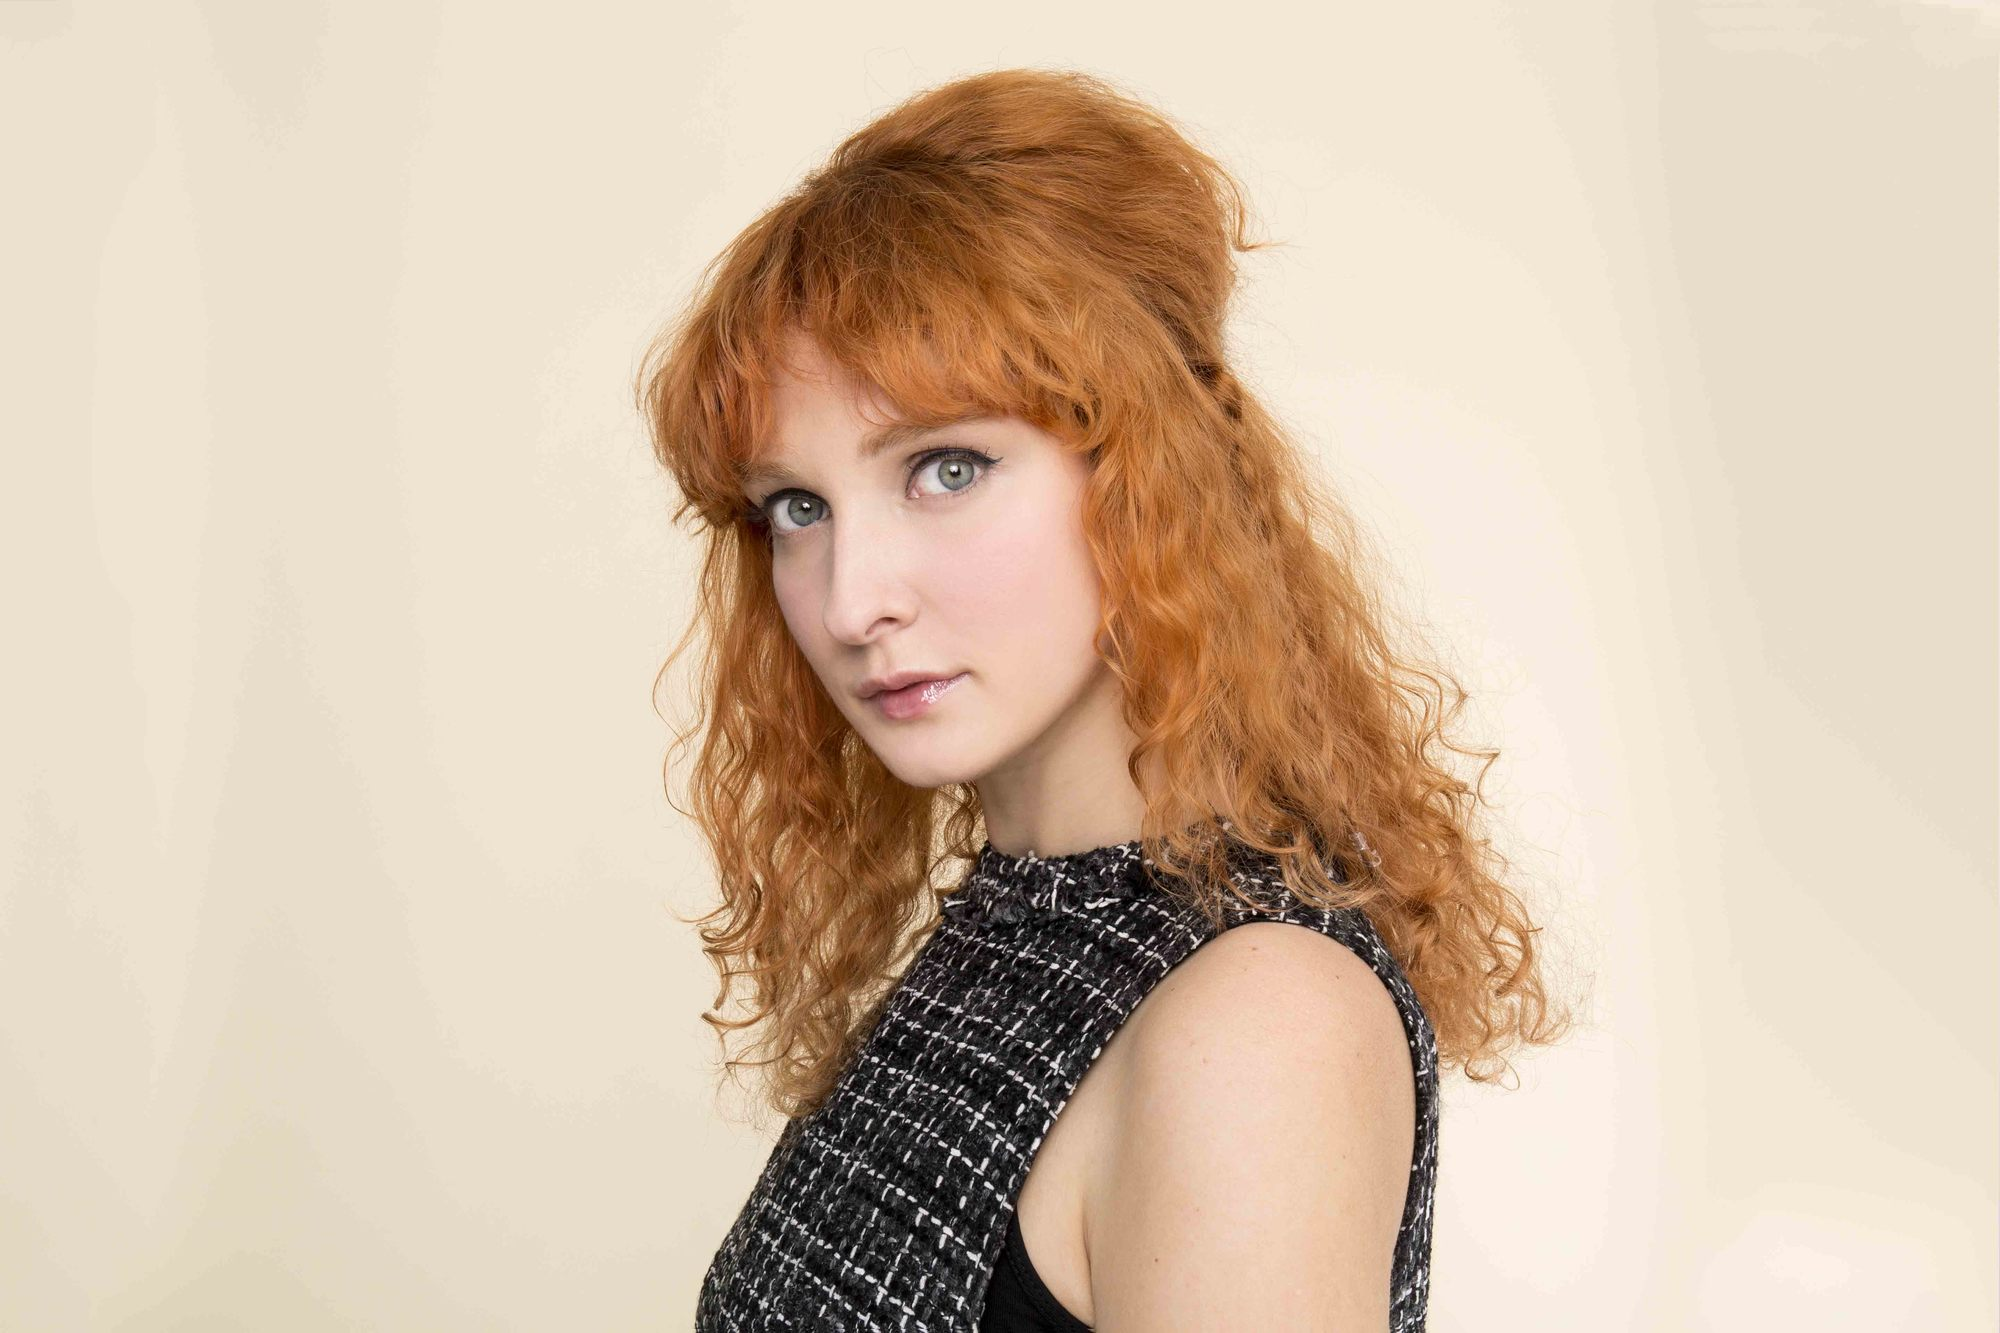 Curly redhead young woman with fringe and half up bouffant hairstyle